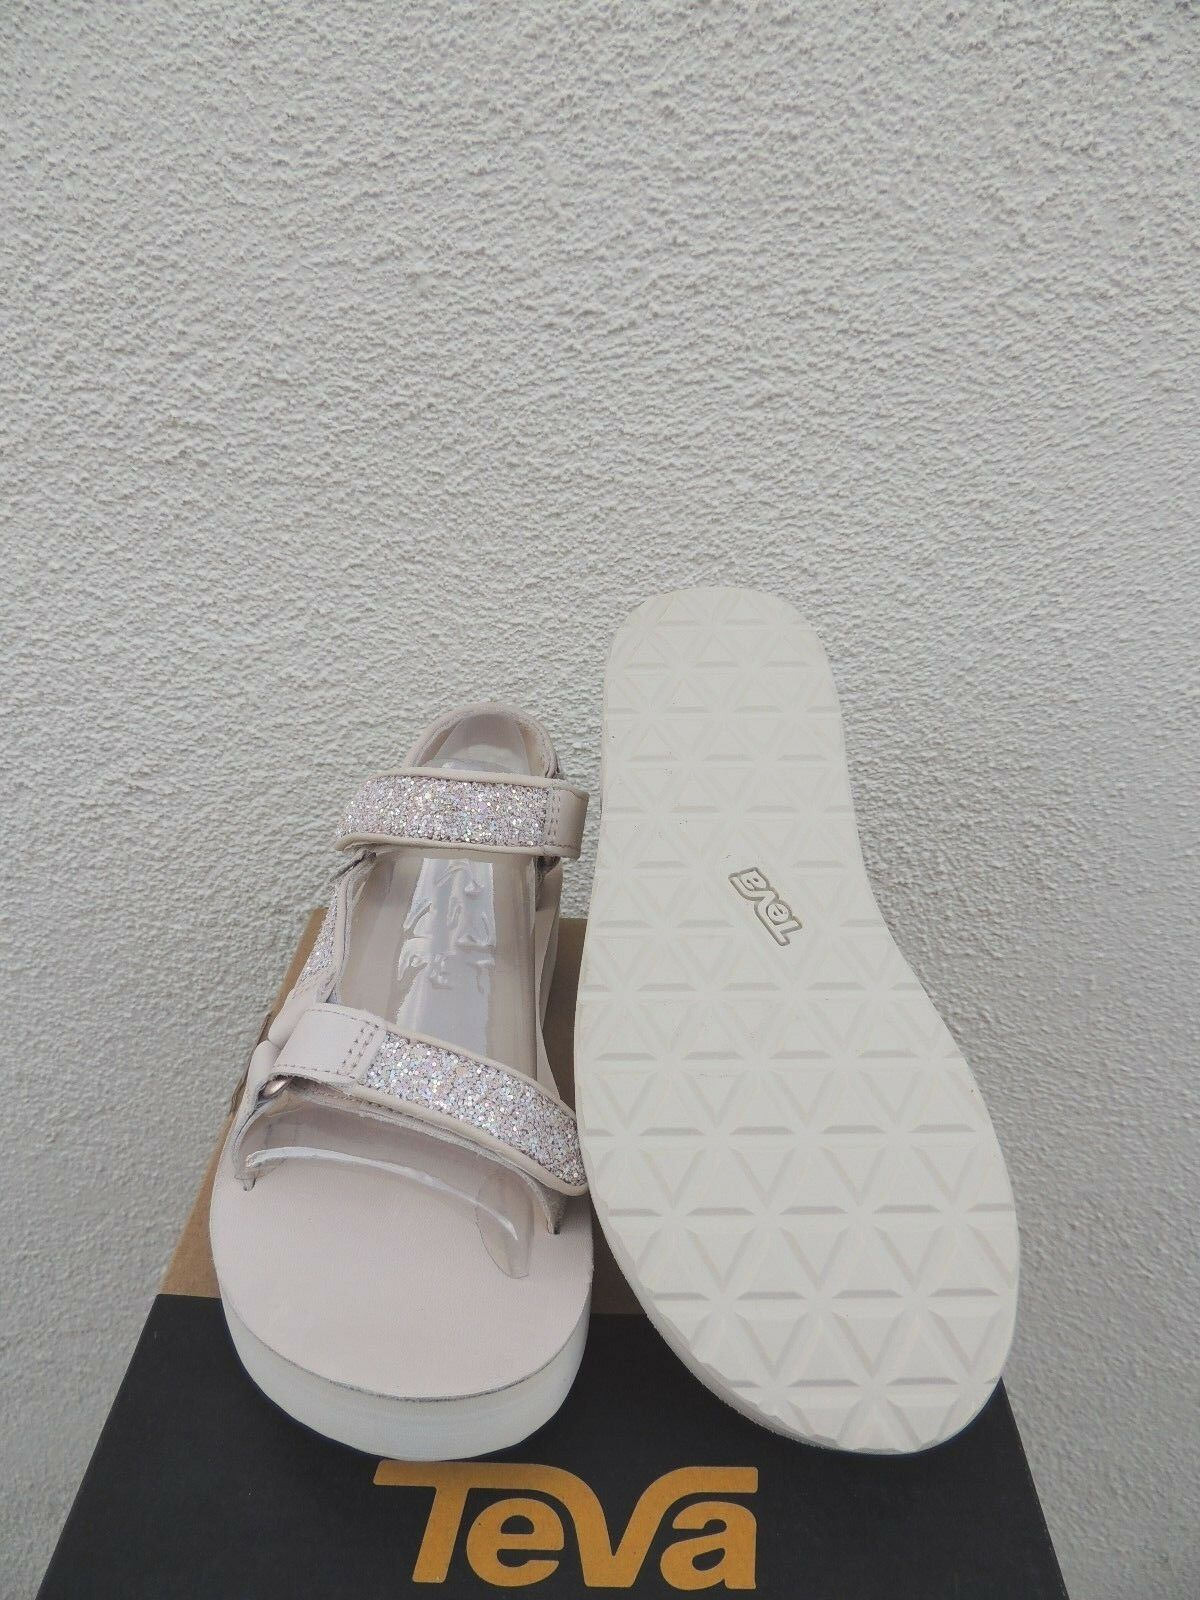 TEVA MIDFORM UNIVERSAL GLAM PINK TINT GLITTER LEATHER SANDALS, US EUR 7/ EUR US 38 NEW 8762d3